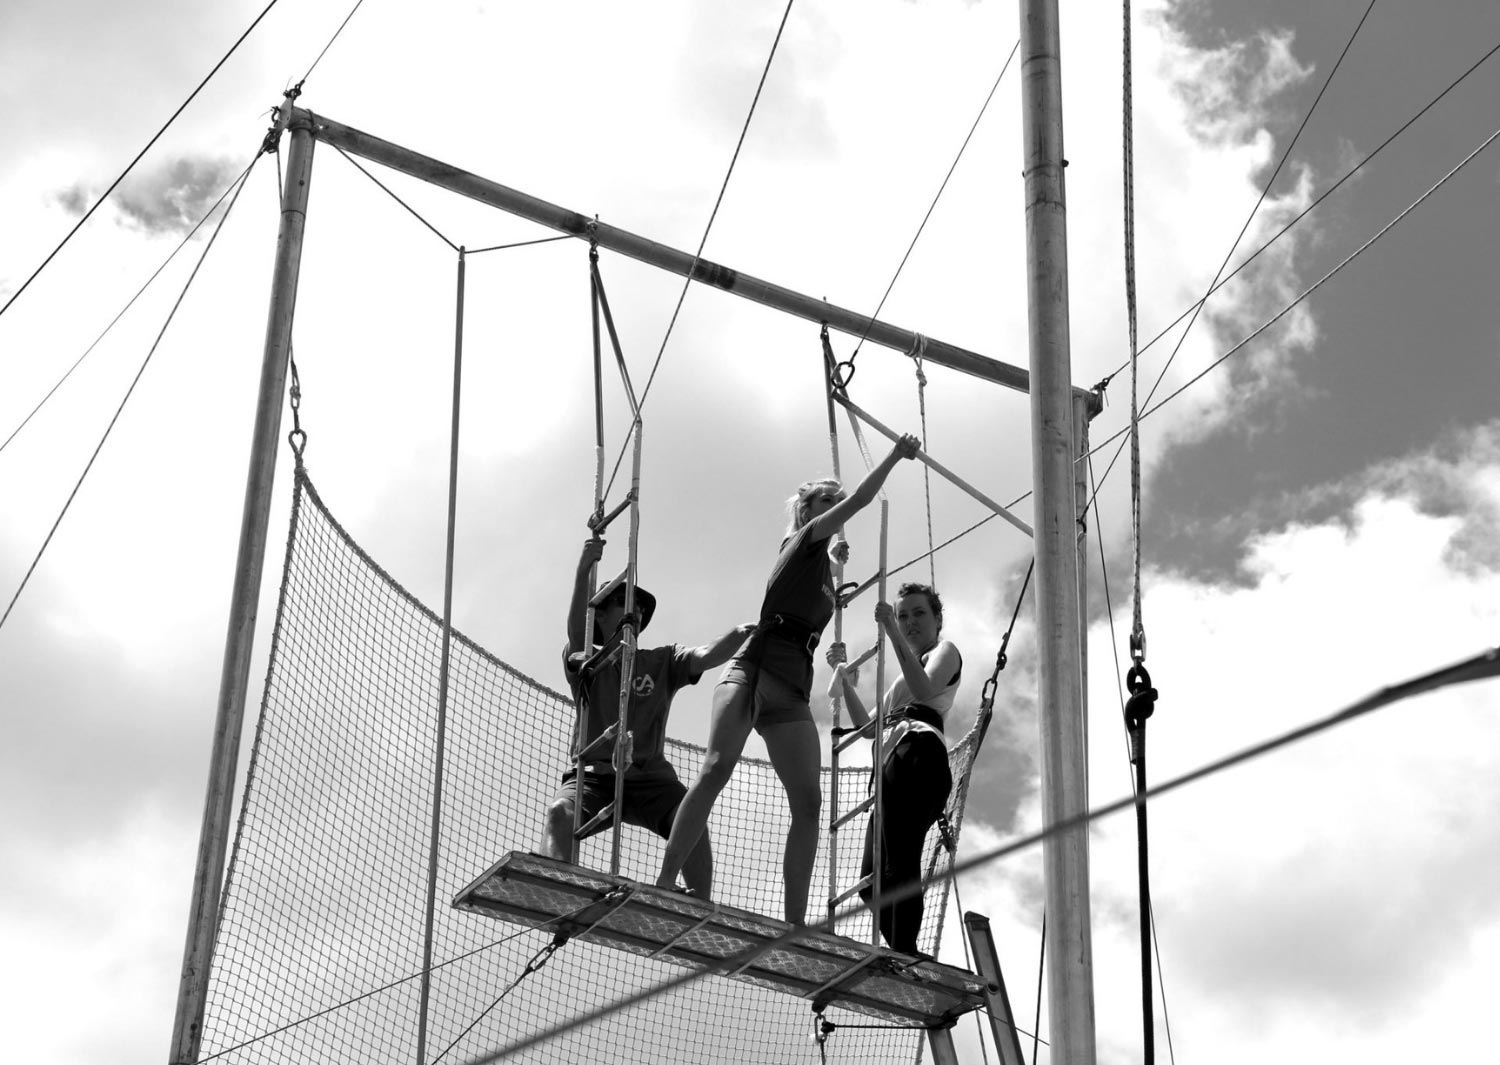 Learning to take off the flying trapeze board - intermediate flying trapeze class